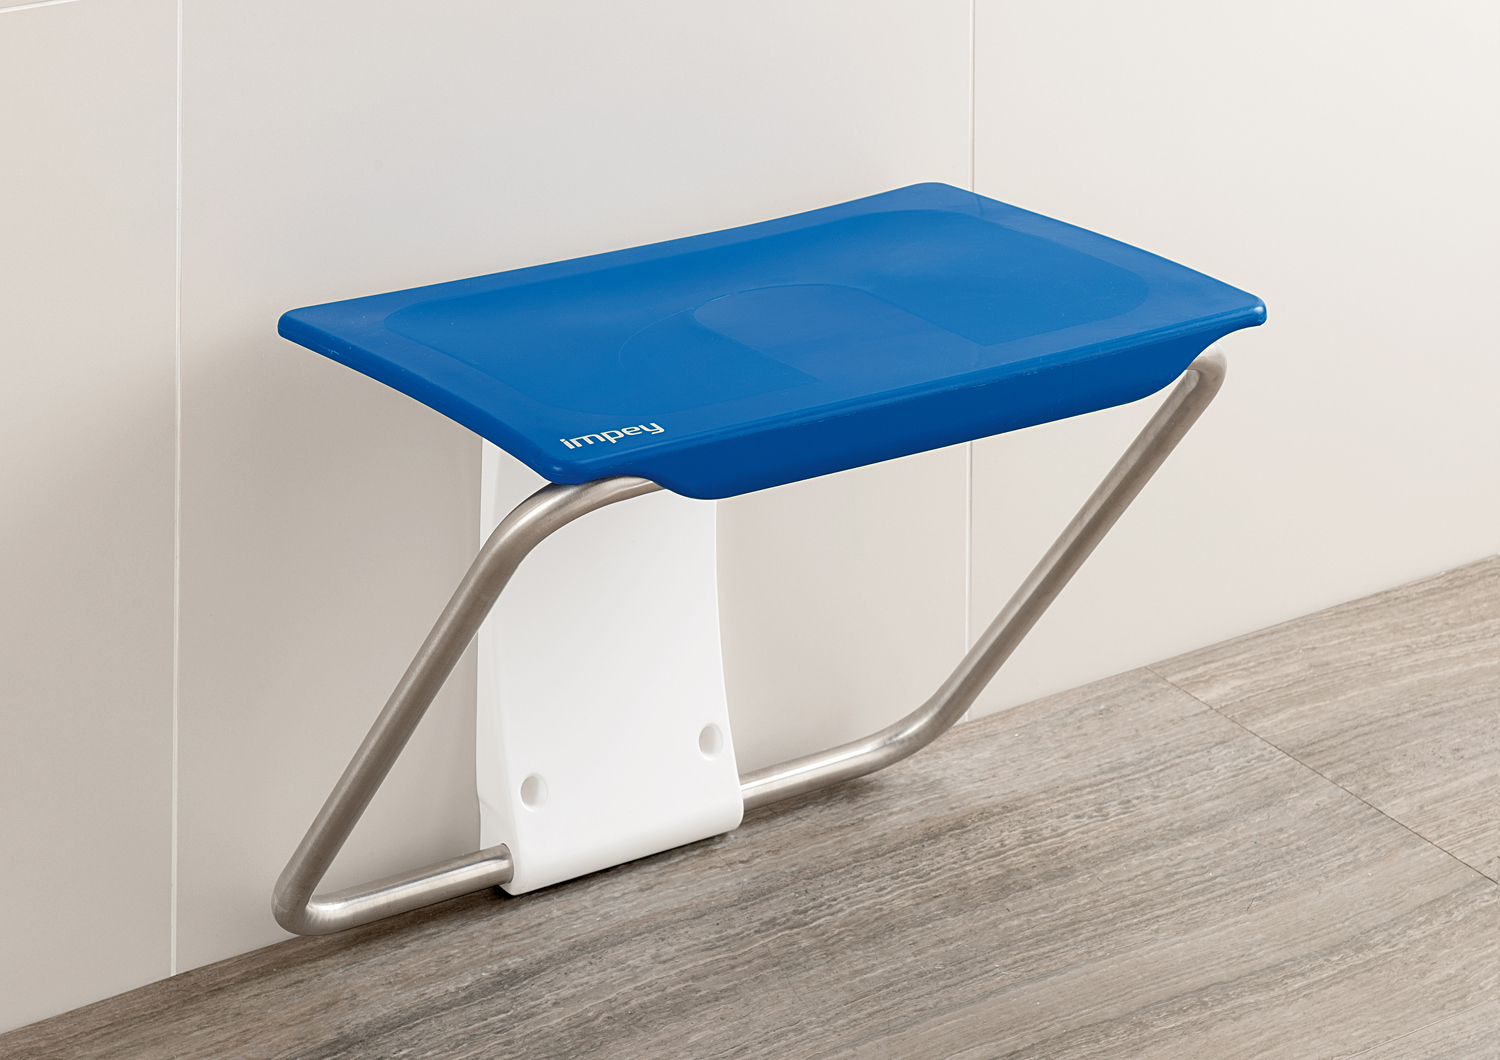 Shower Bench by Slimfold | Only £169.99 from Practical Bathing